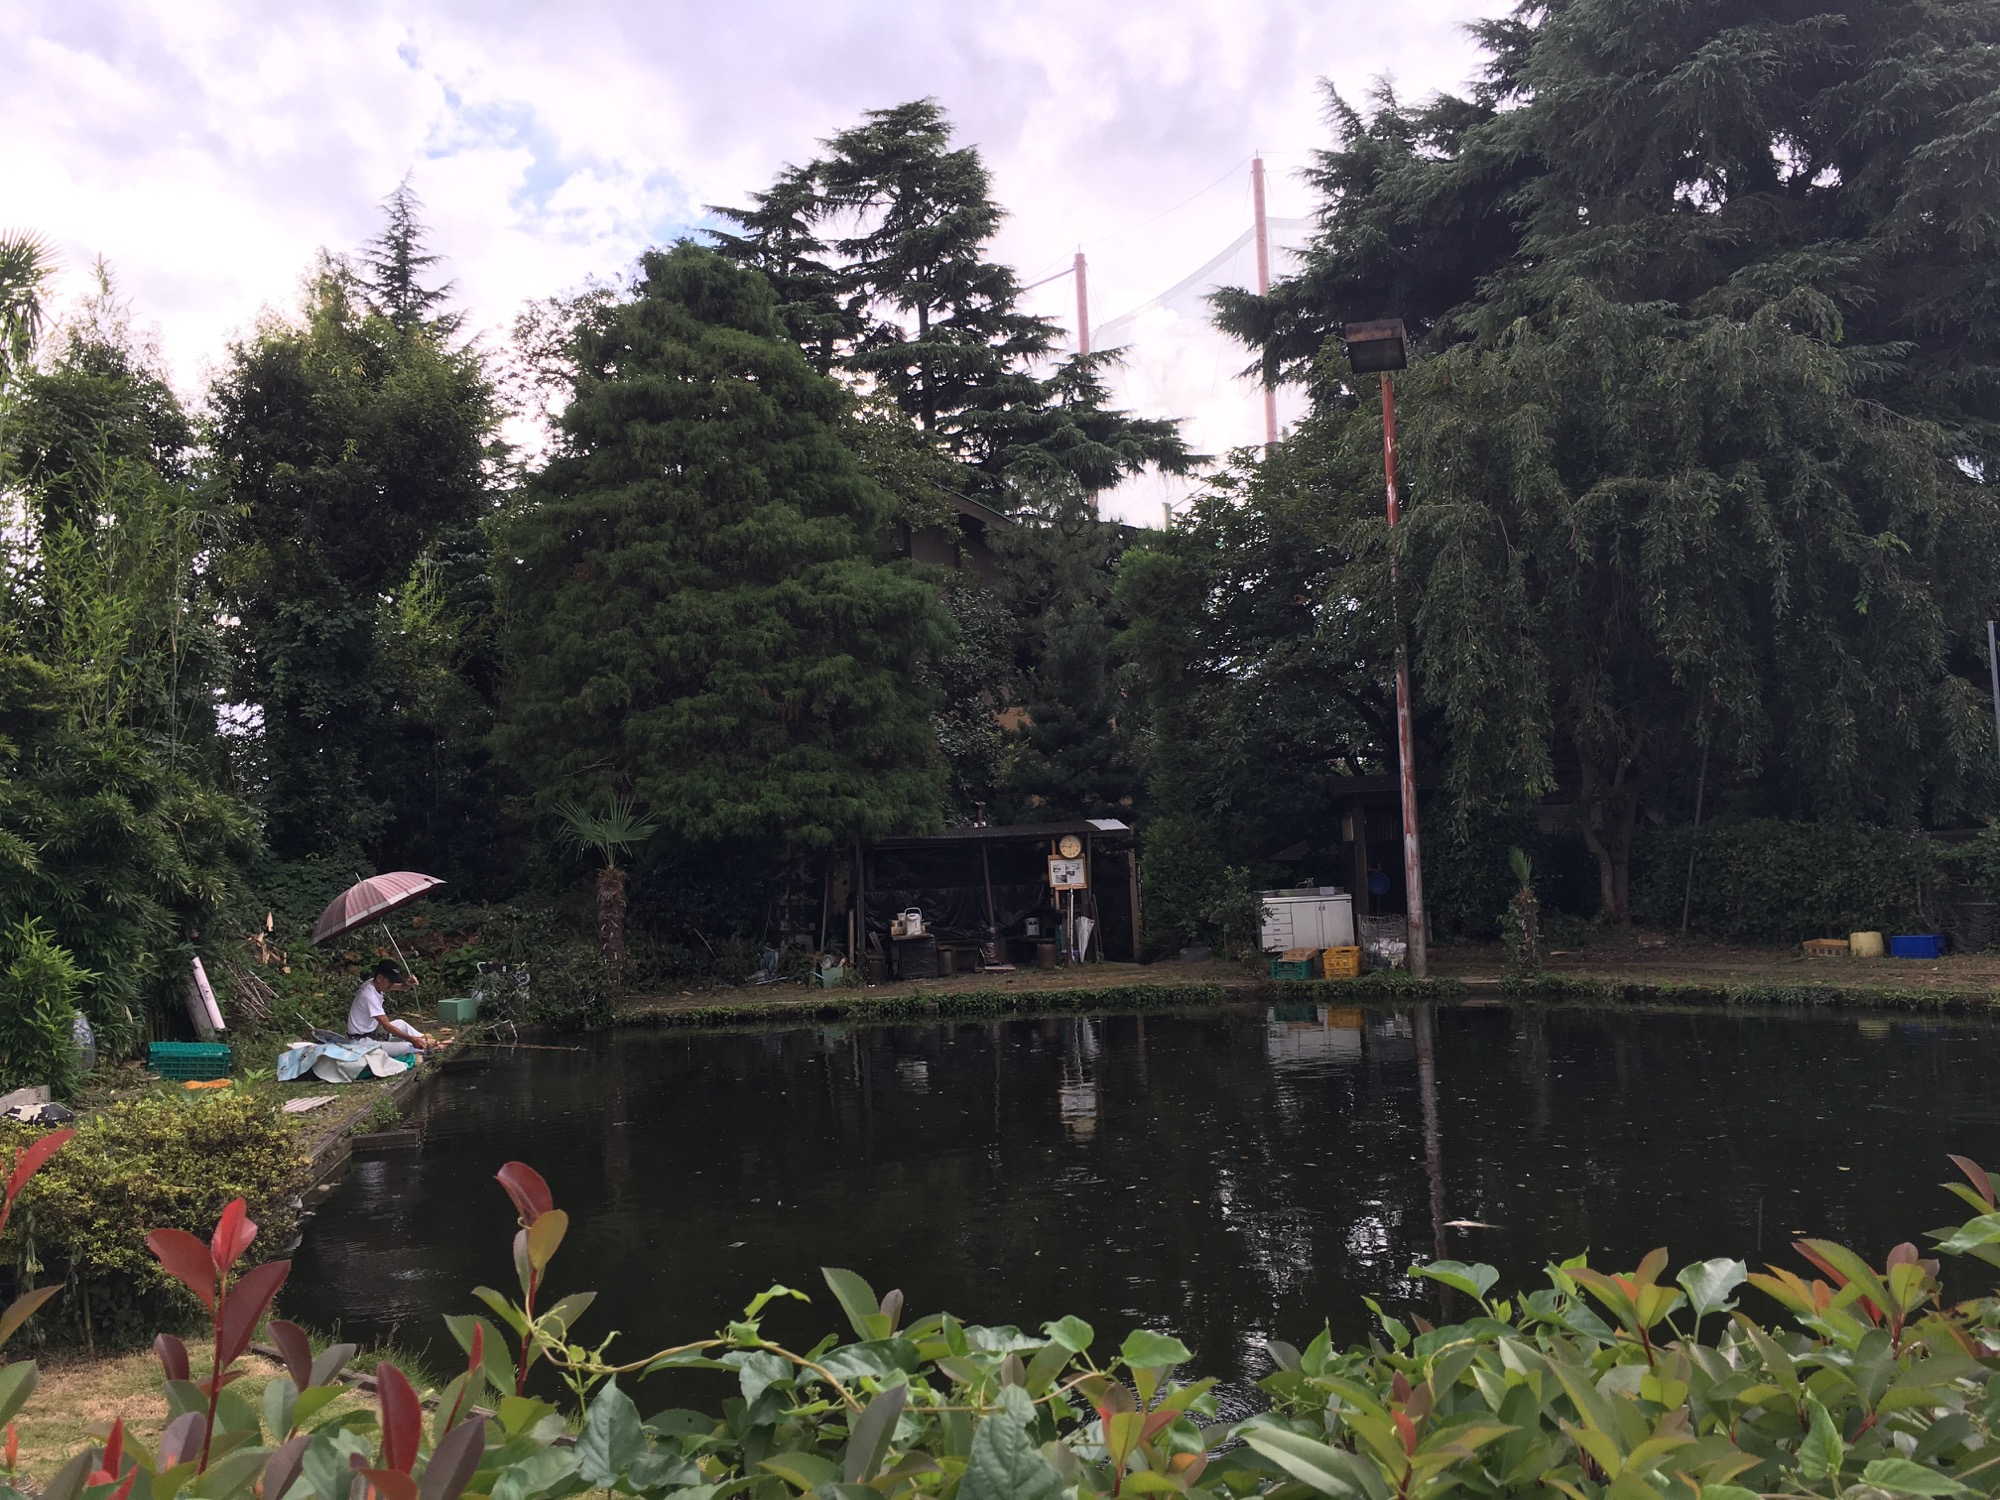 A nearby fishing pond